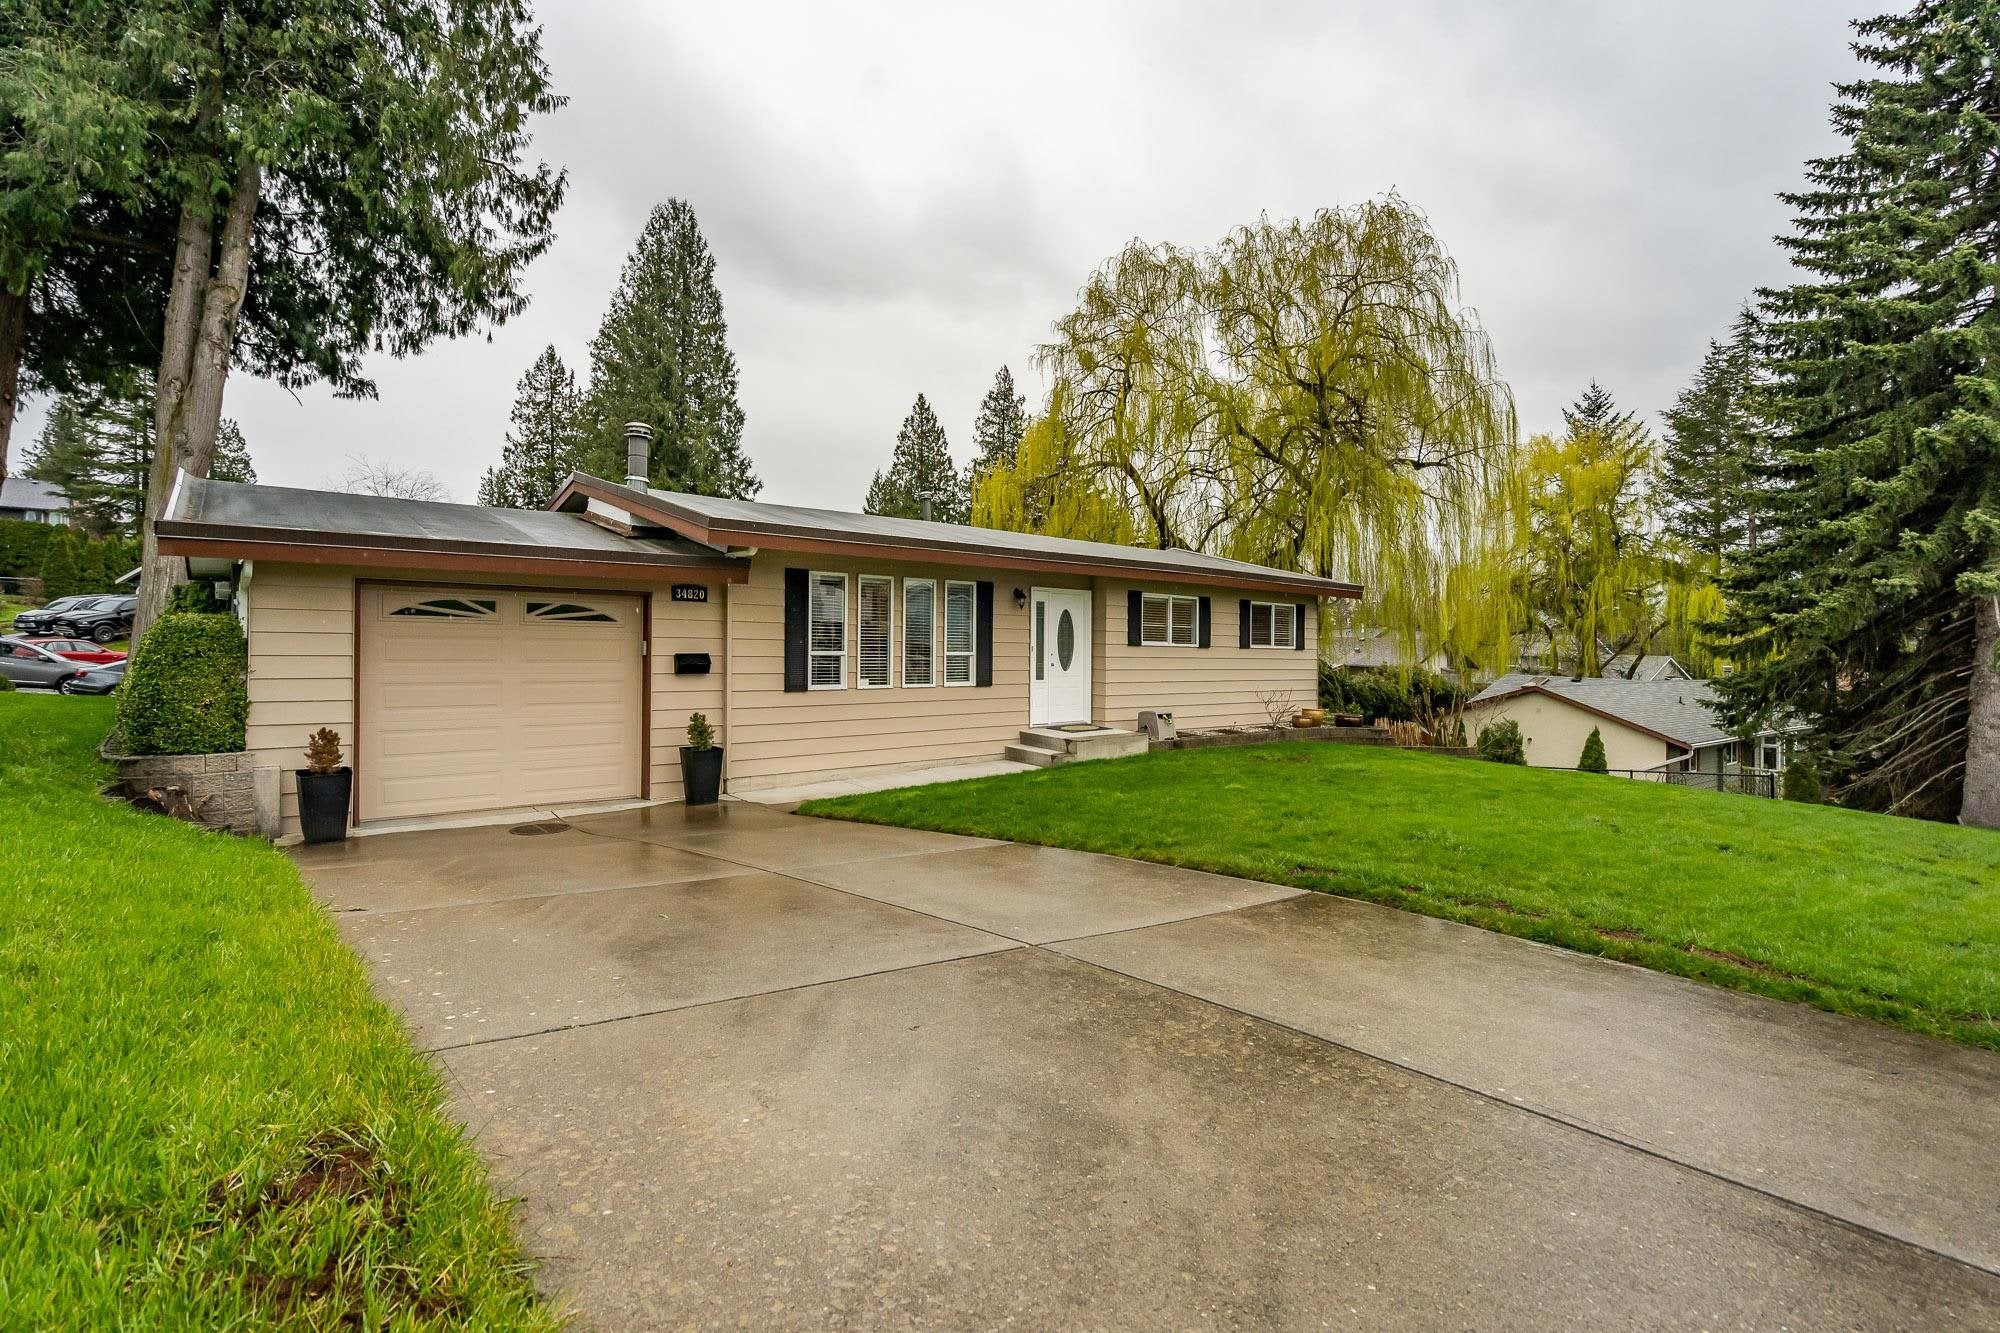 34820 CHAMPLAIN CRESCENT - Abbotsford East House/Single Family for sale, 5 Bedrooms (R2627299) - #1